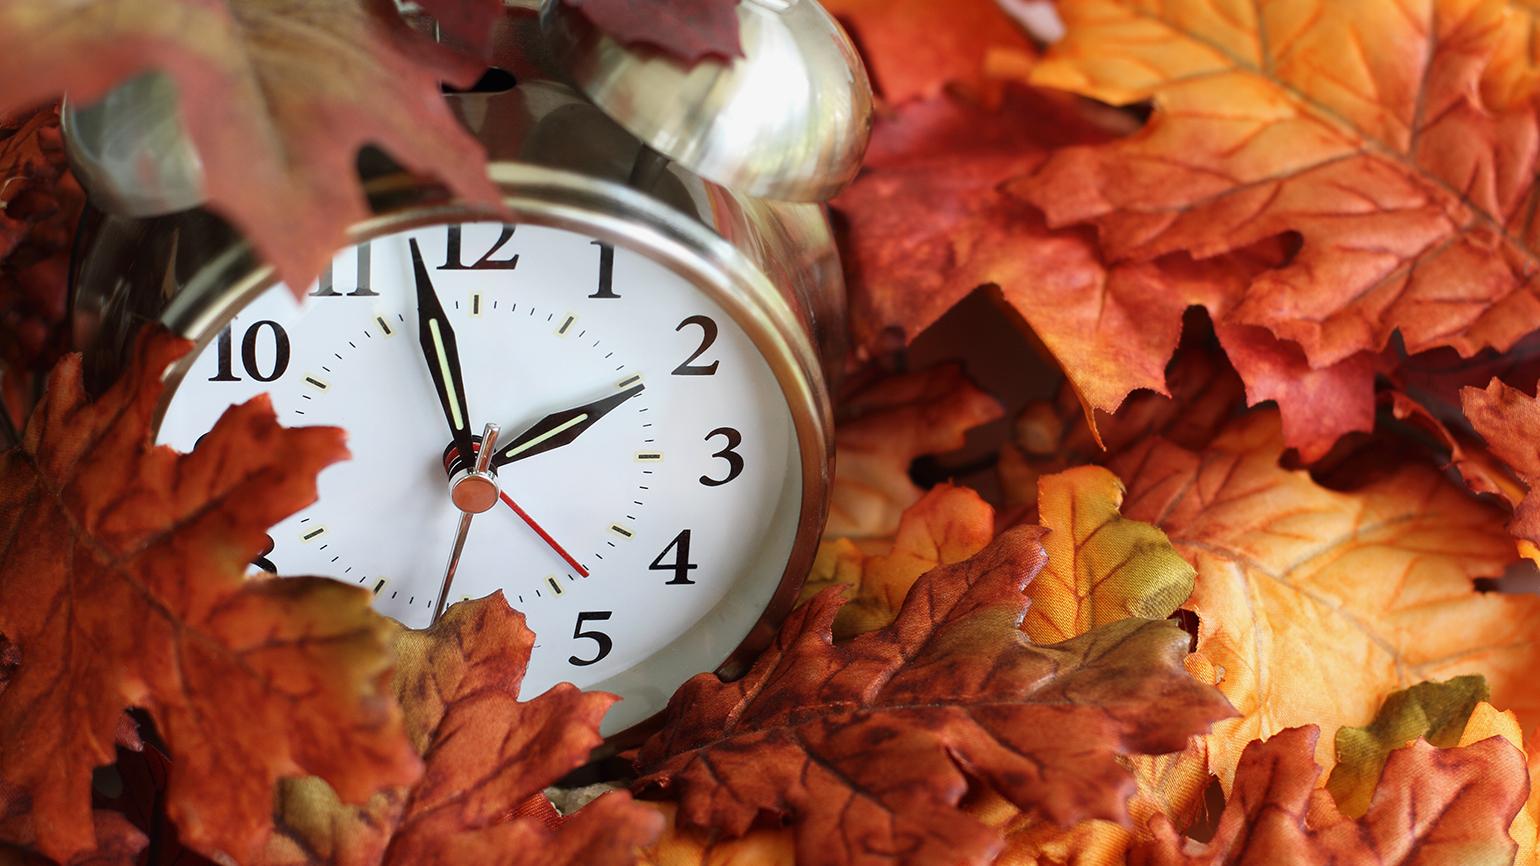 A clock showing one minute till 2 rests in a pile of leaves